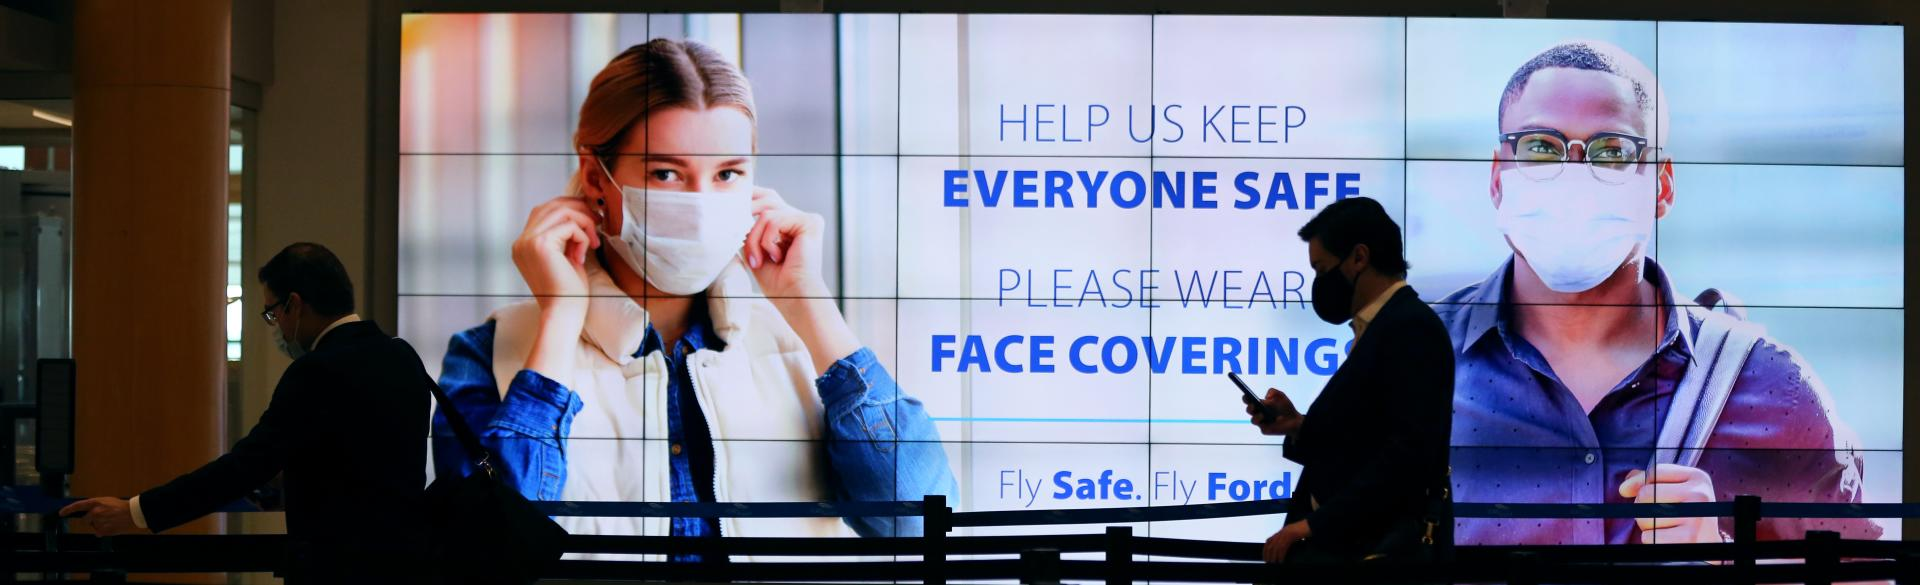 Fly Safe. Fly Ford. - Mask Sign